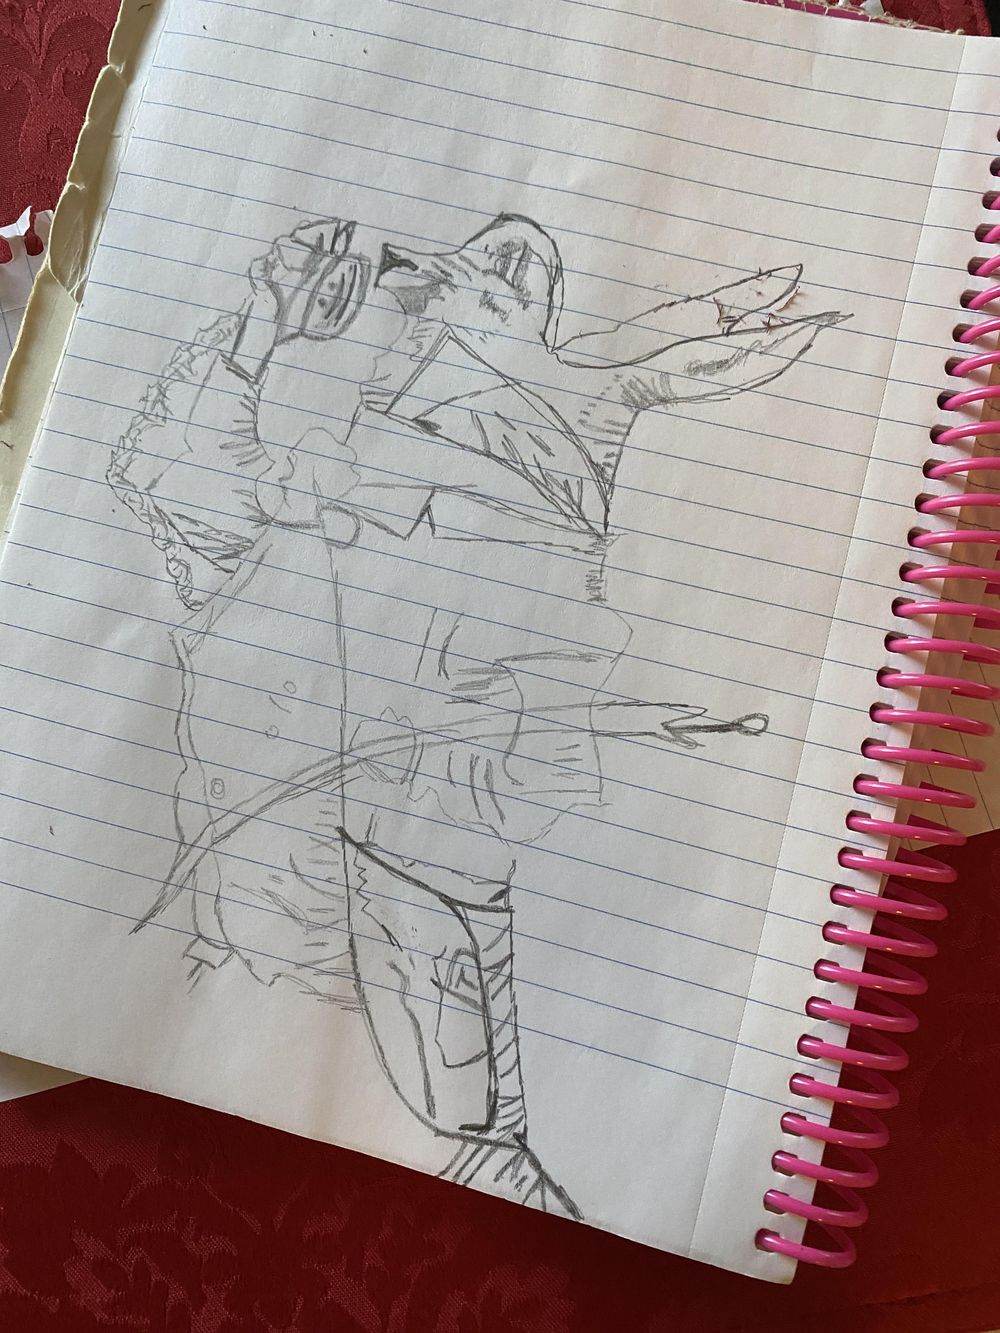 Upside Down Drawing - image 1 - student project